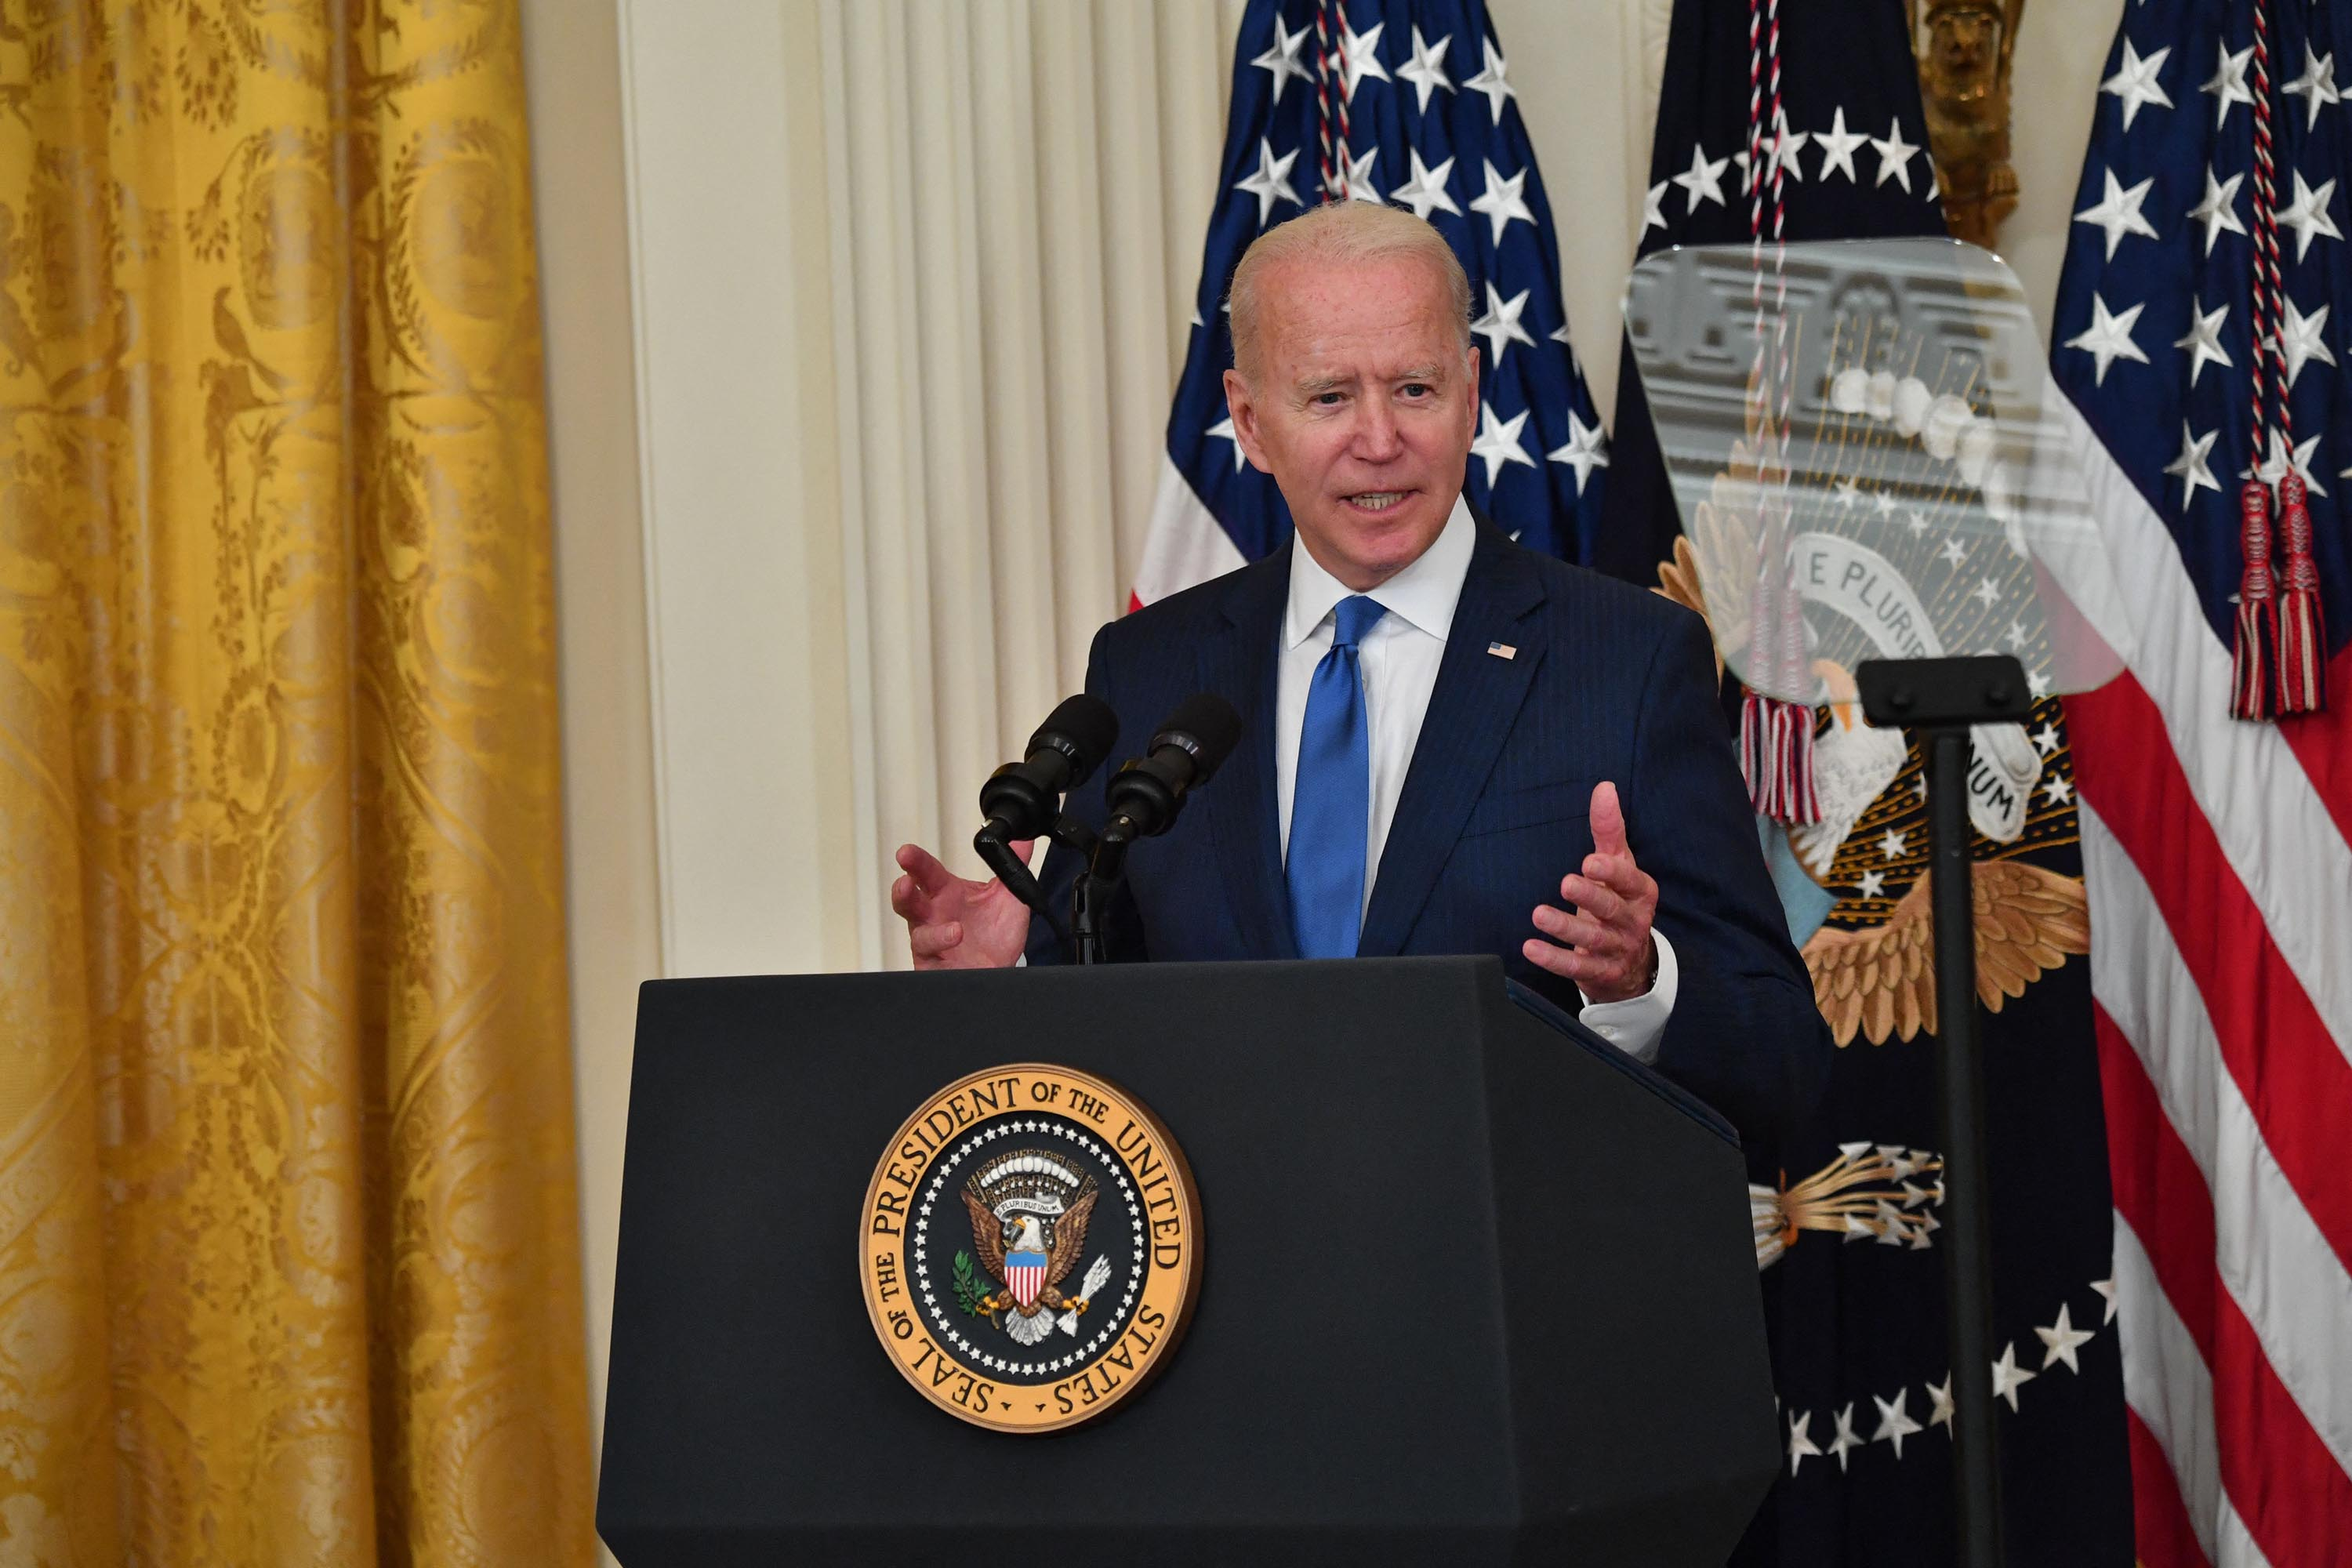 Biden touts bipartisan infrastructure deal in Wisconsin: 'This is a generational investment'